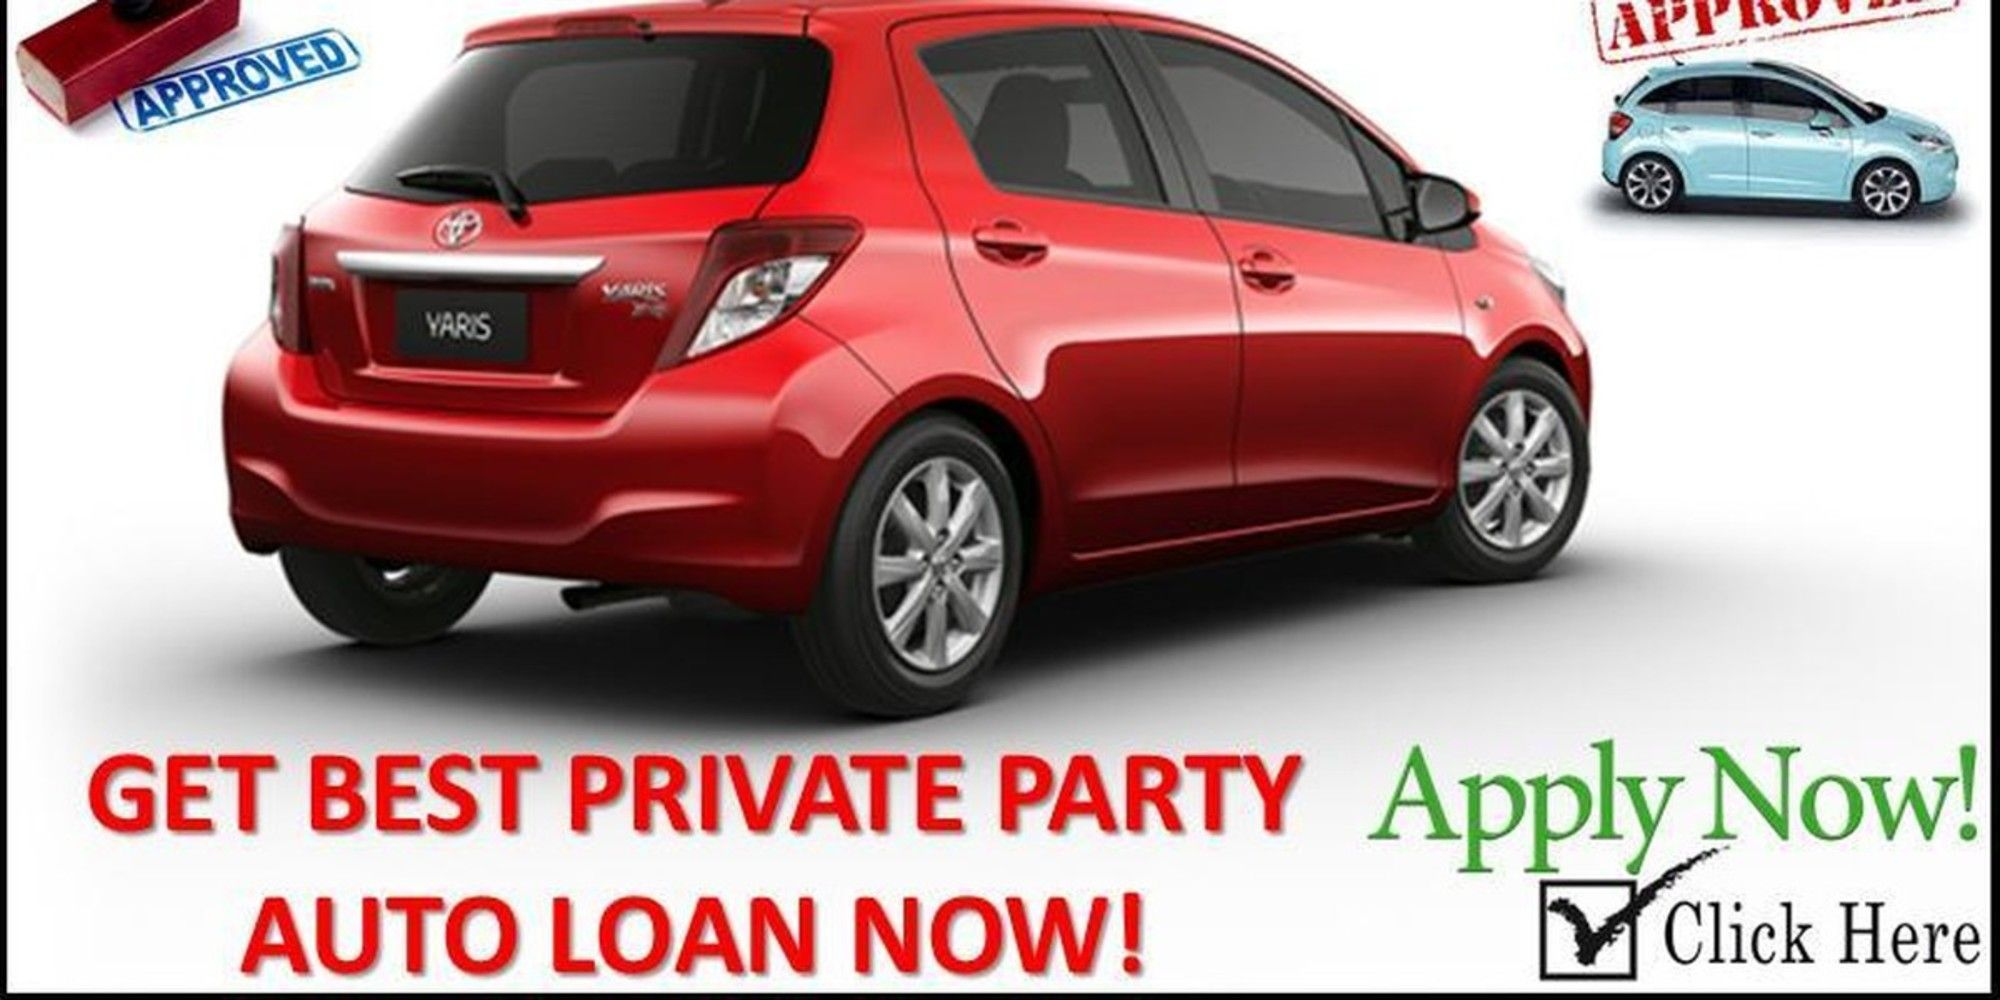 Now get the best private party car financing for bad